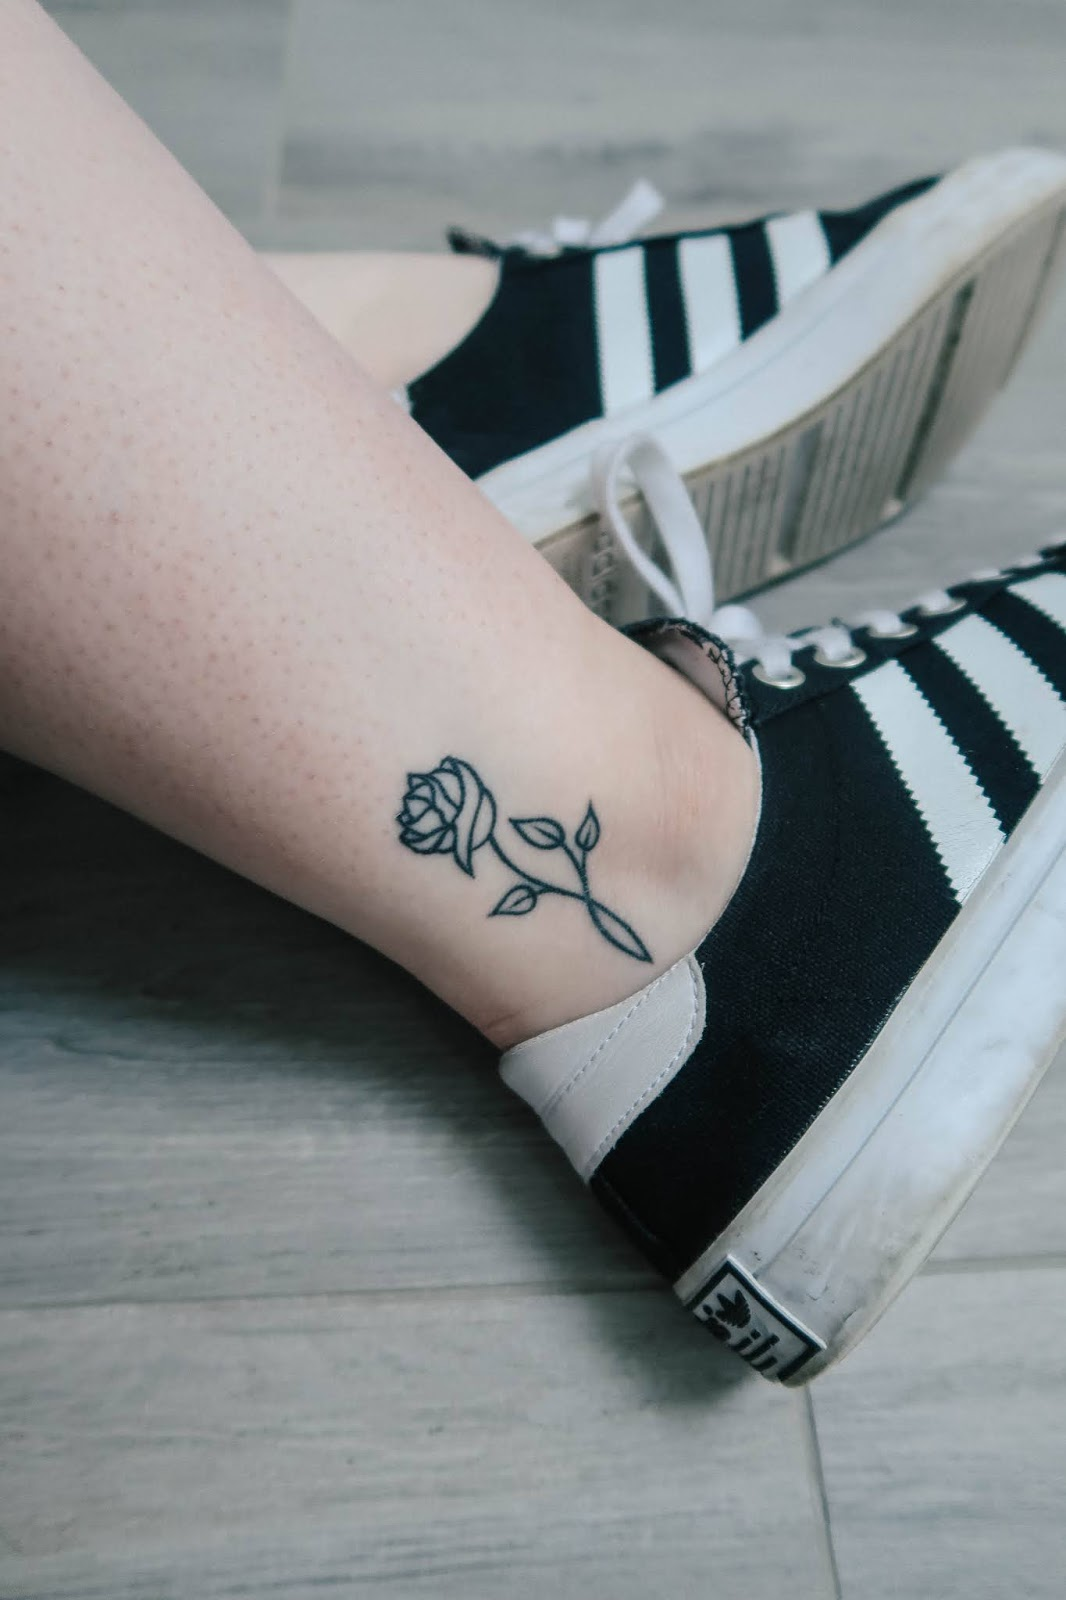 3 Things That Surprised Me About Getting My First Tattoo